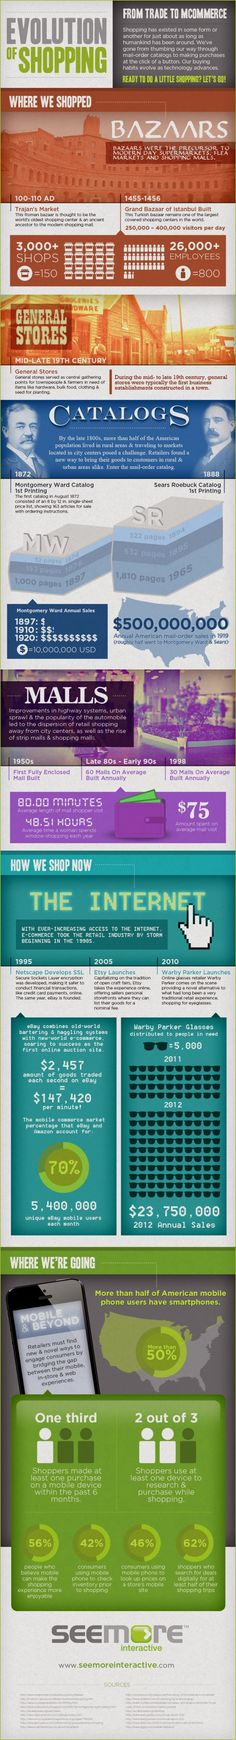 The Evolution of Shopping: From Trade to Mcommerce.